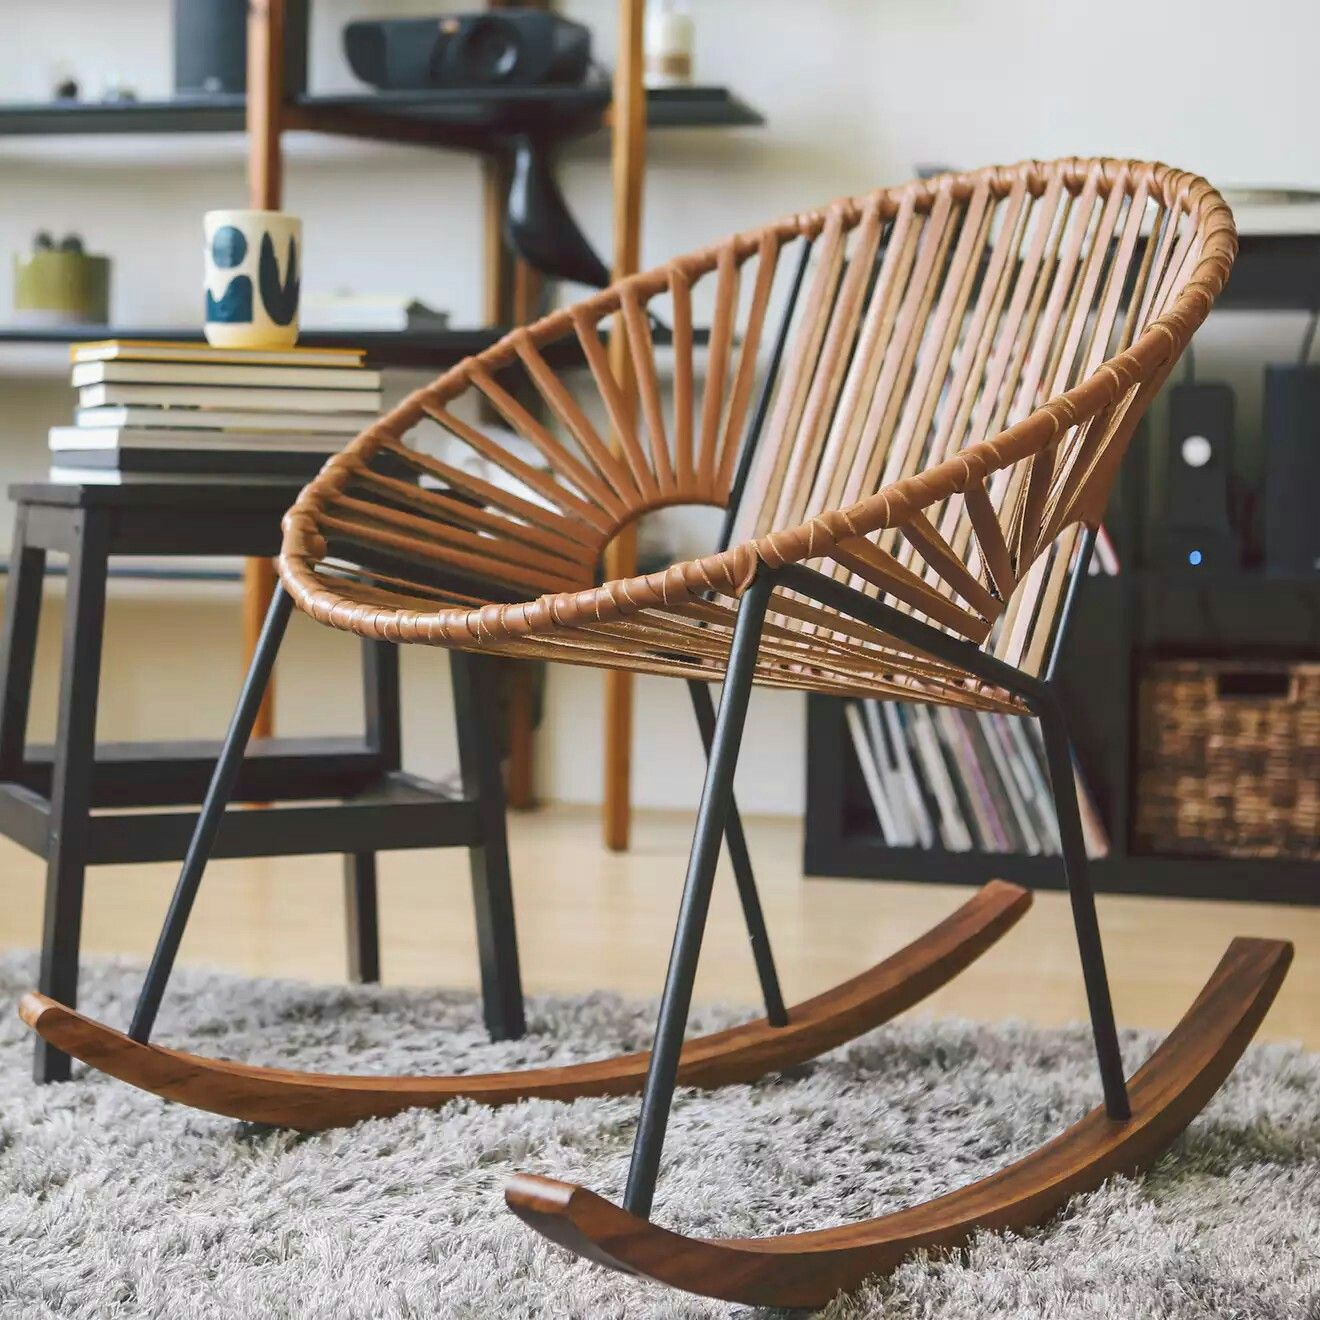 Huckberry Mexa IXTAPA LEATHER ROCKING CHAIR In CAMEL BROWN LEATHER/ BLACK